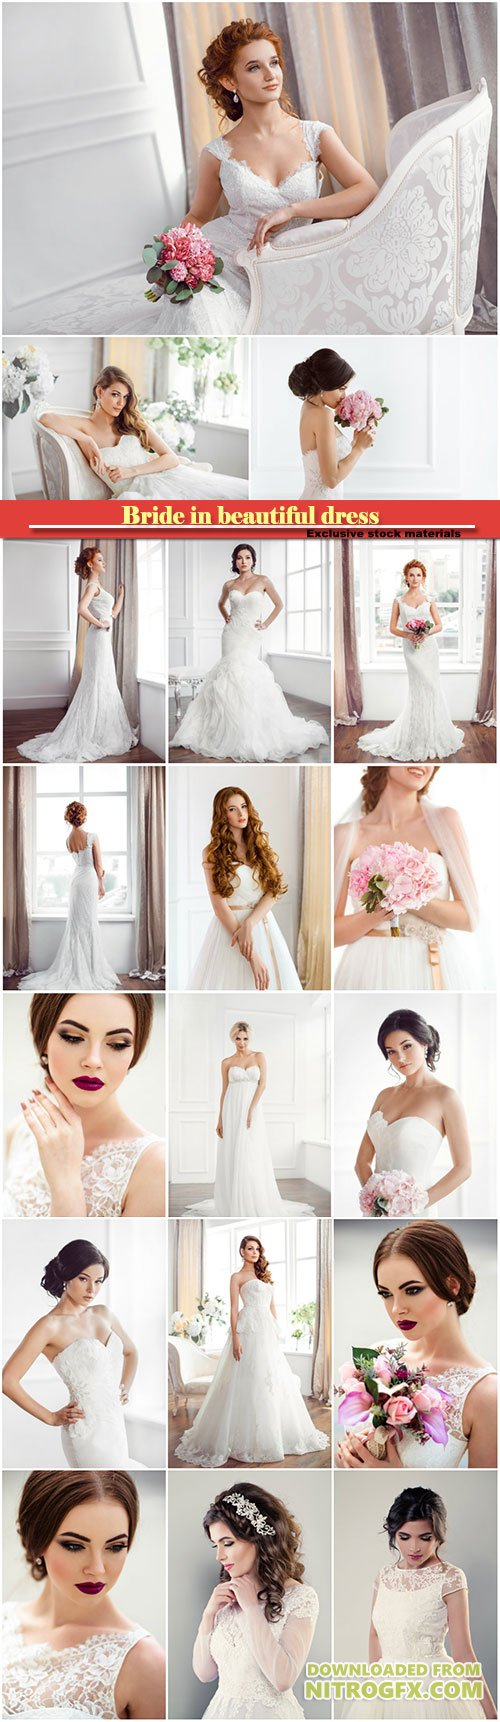 Bride in beautiful dress, trendy wedding style shot